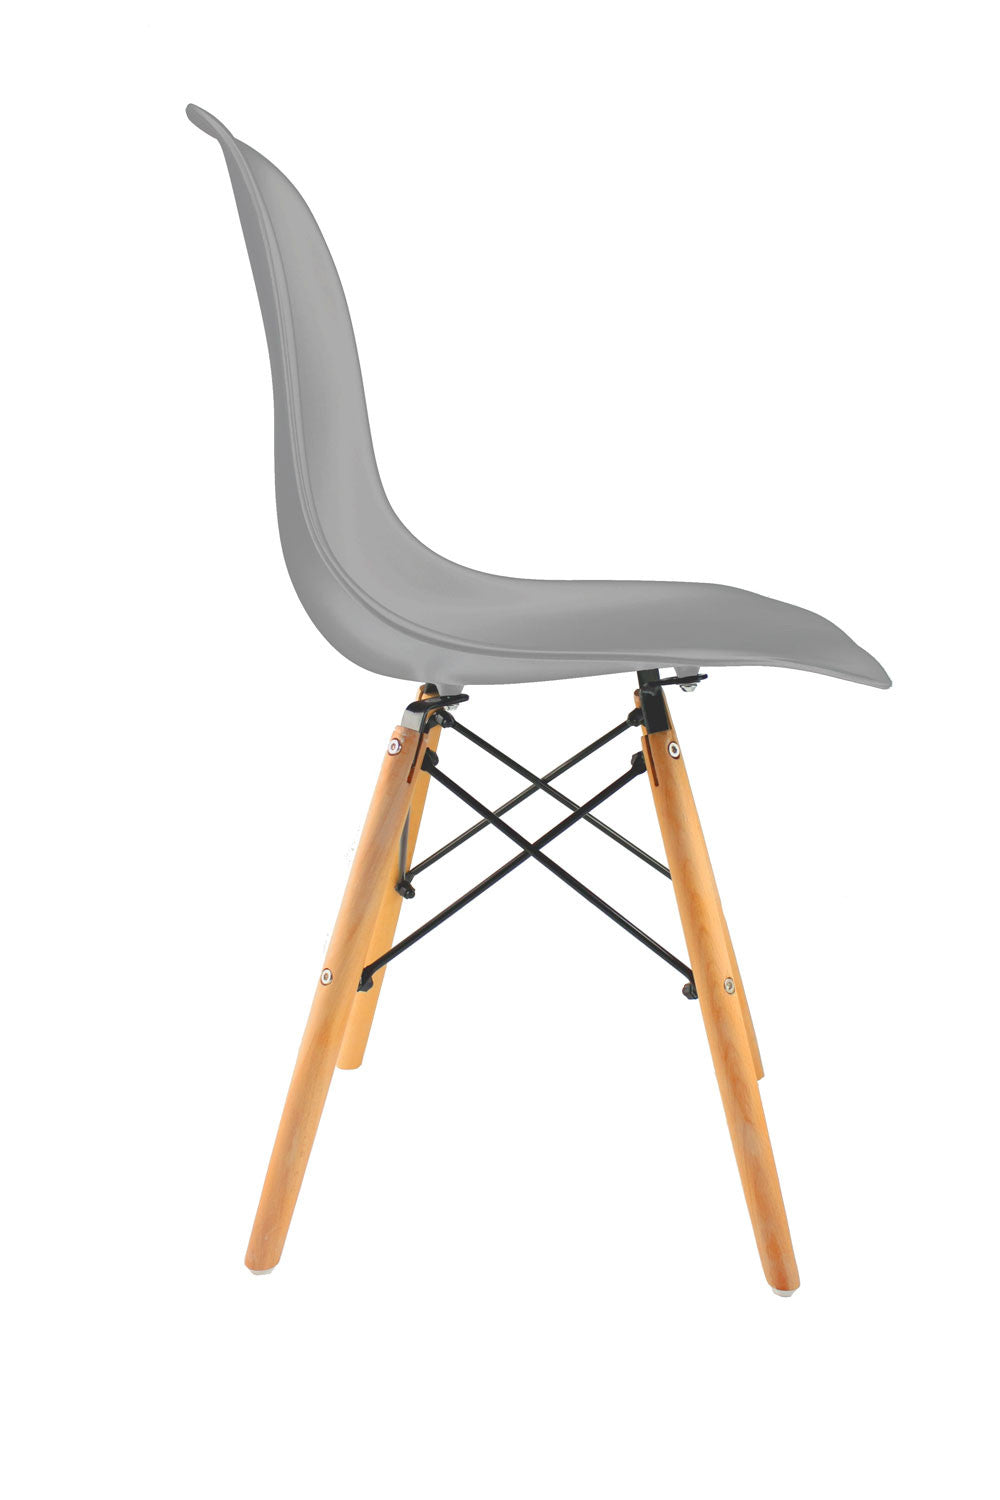 Silla wooden Tower gris madera